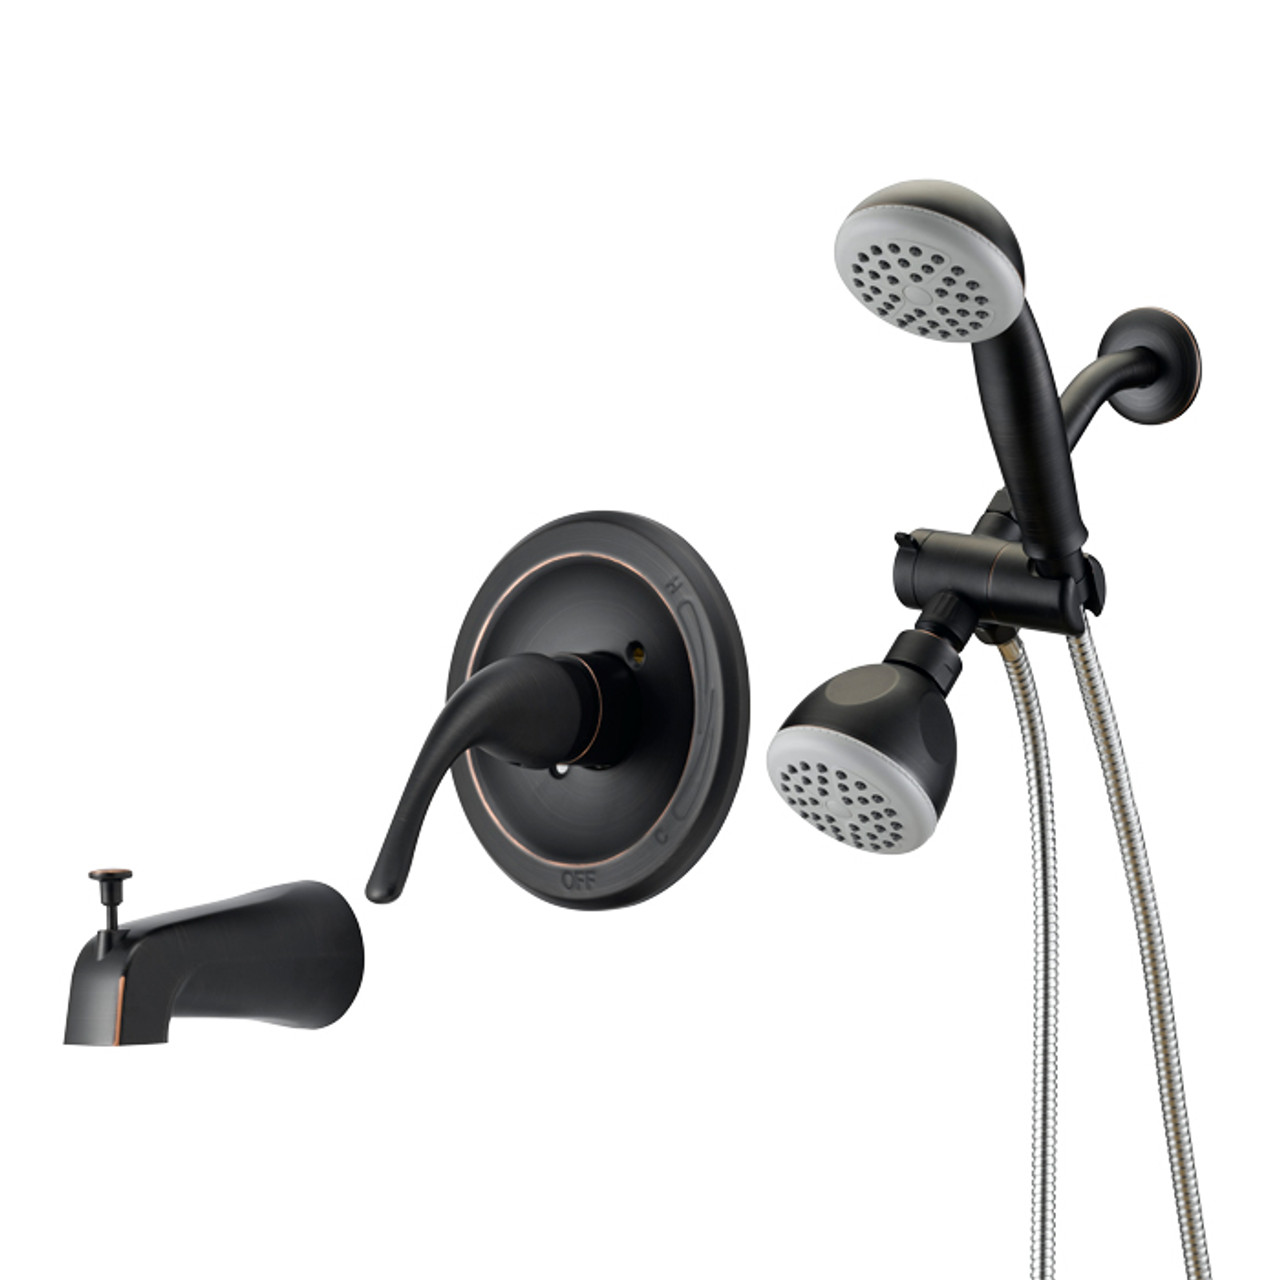 designers impressions 654708 oil rubbed bronze single handle tub shower combo faucet with handheld wand sprayer